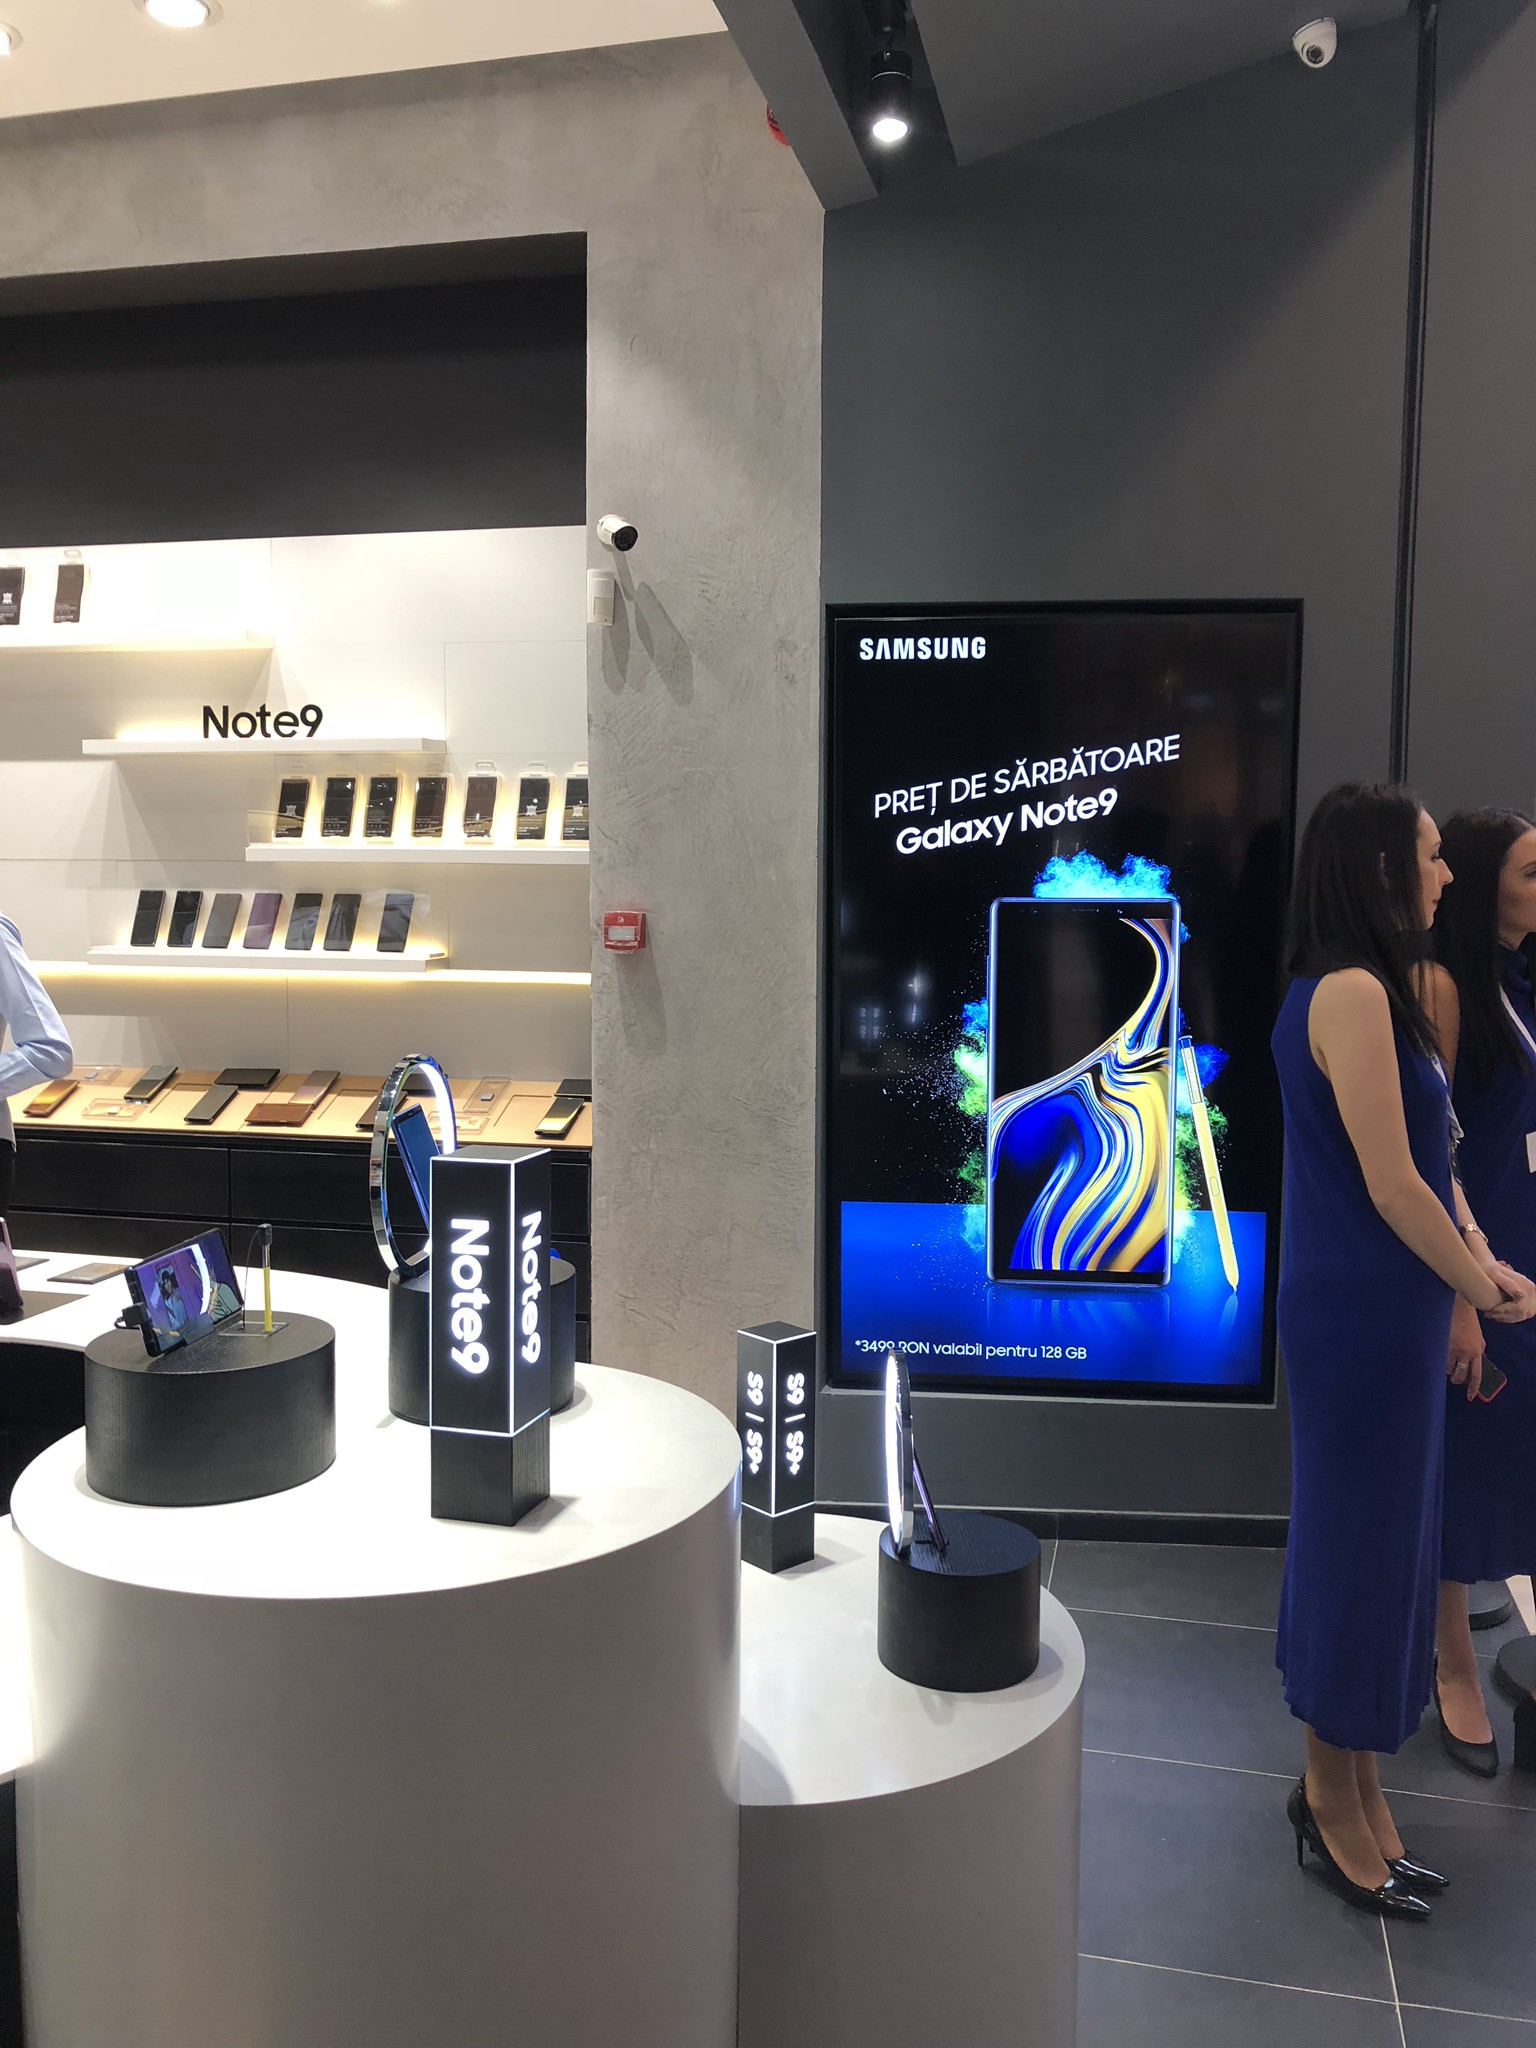 Samsung in-store campaign provided by TPS Engage